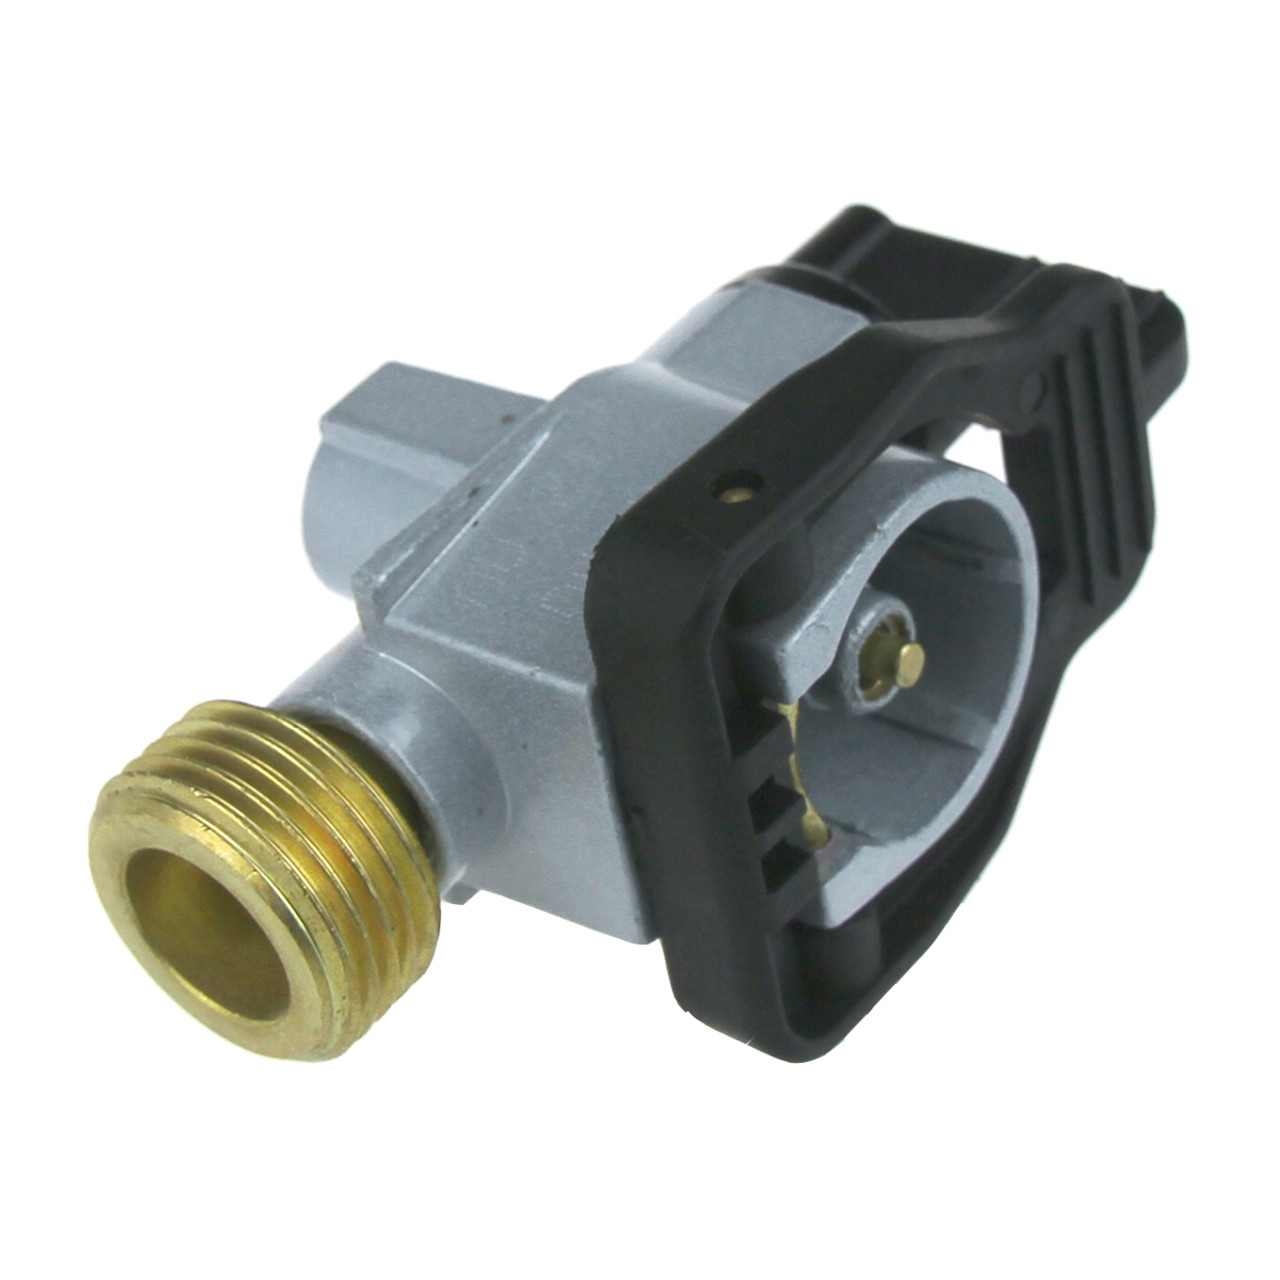 Clip on 21mm Flogas Calor to W21 8 Shell Gas Bottle Adapter